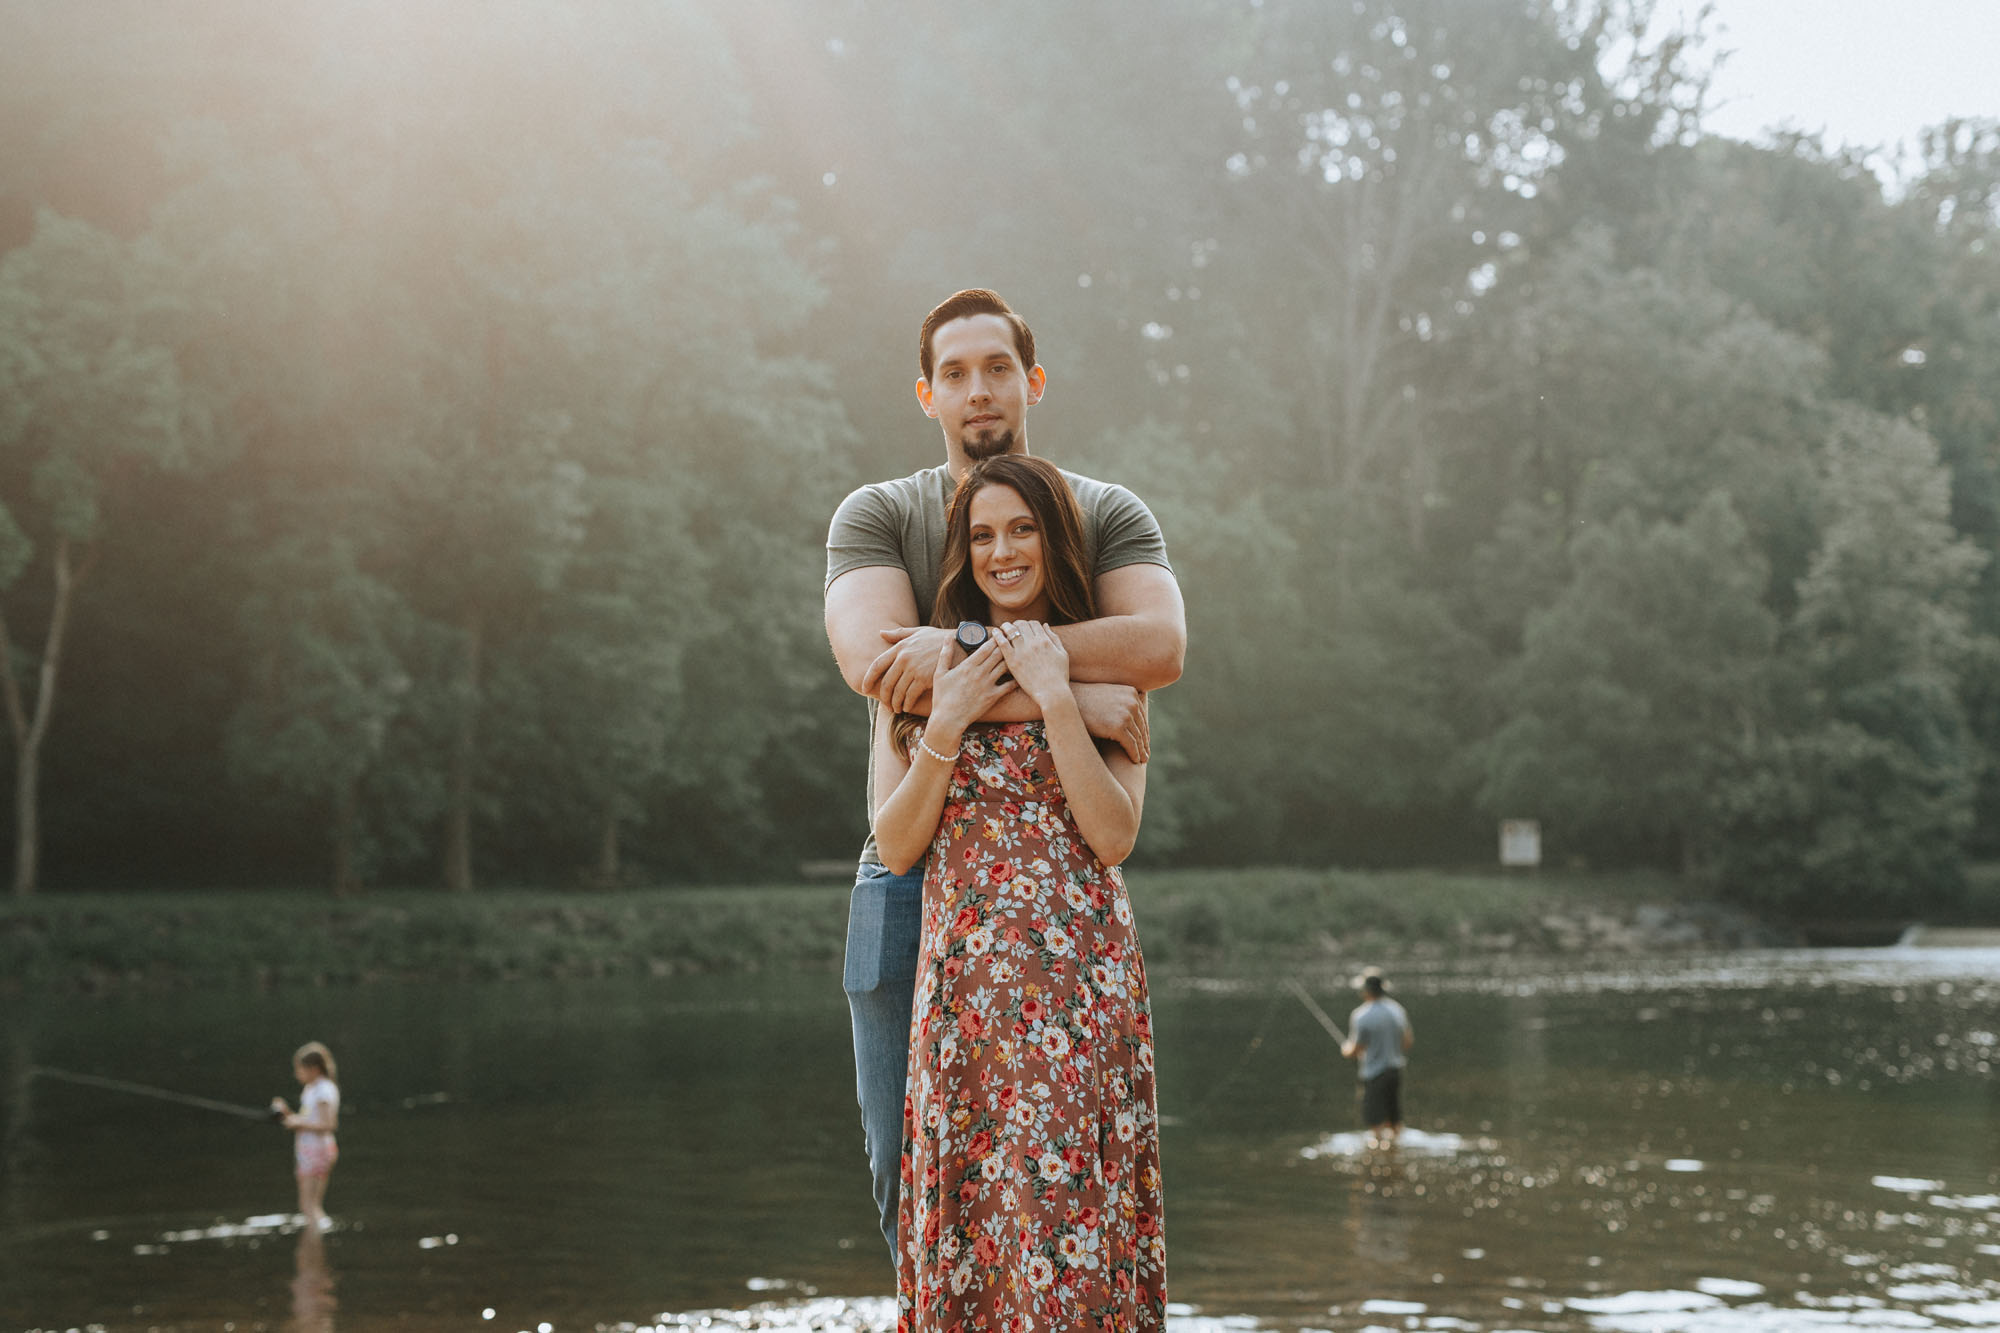 Twisted-Oaks-Studio-Tyler-Park-Engagement-9492.jpg